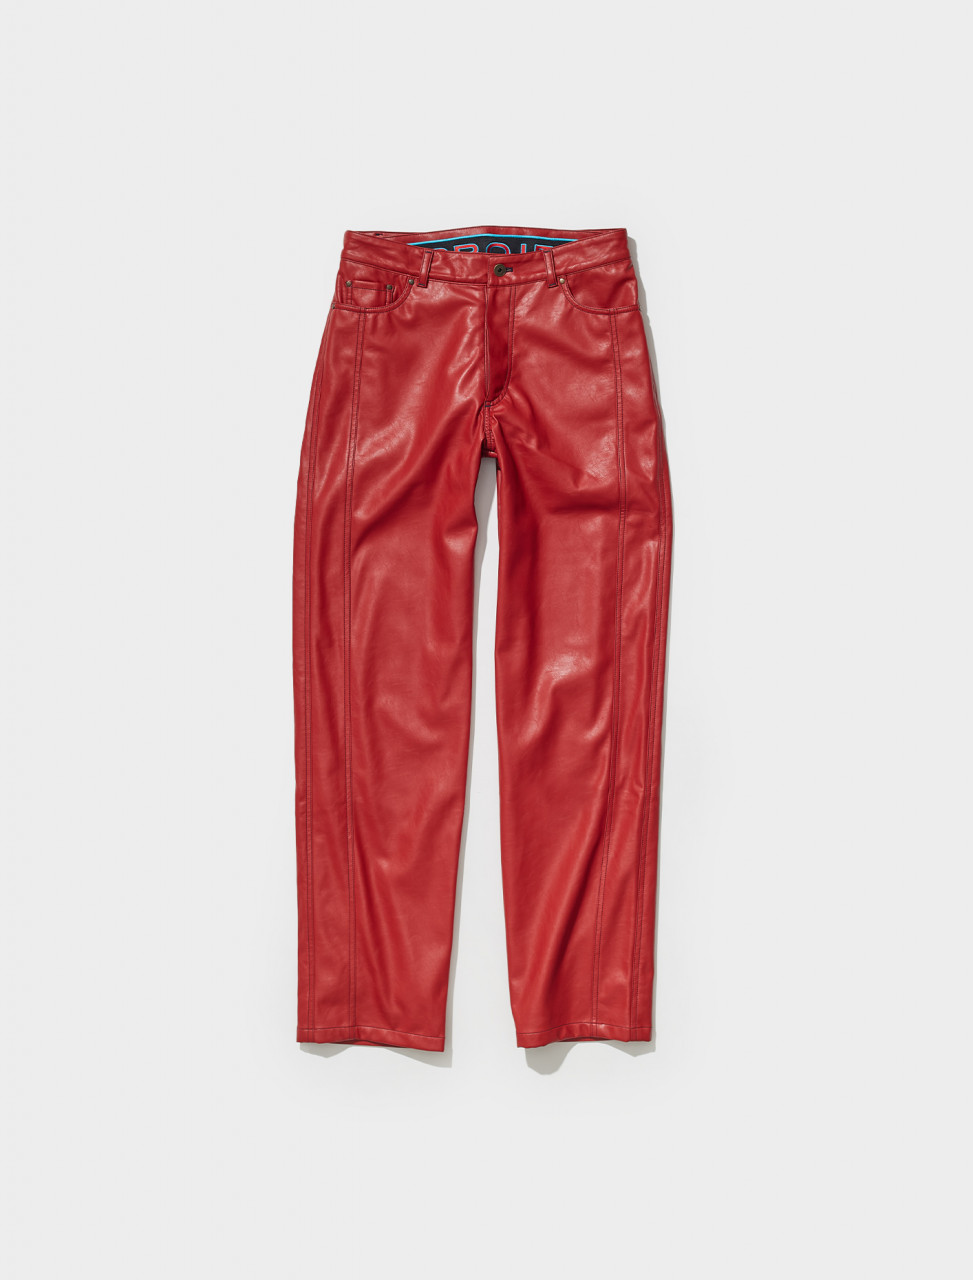 PANT74 S21 F322 Y PROJECT BOXER PANT IN RED